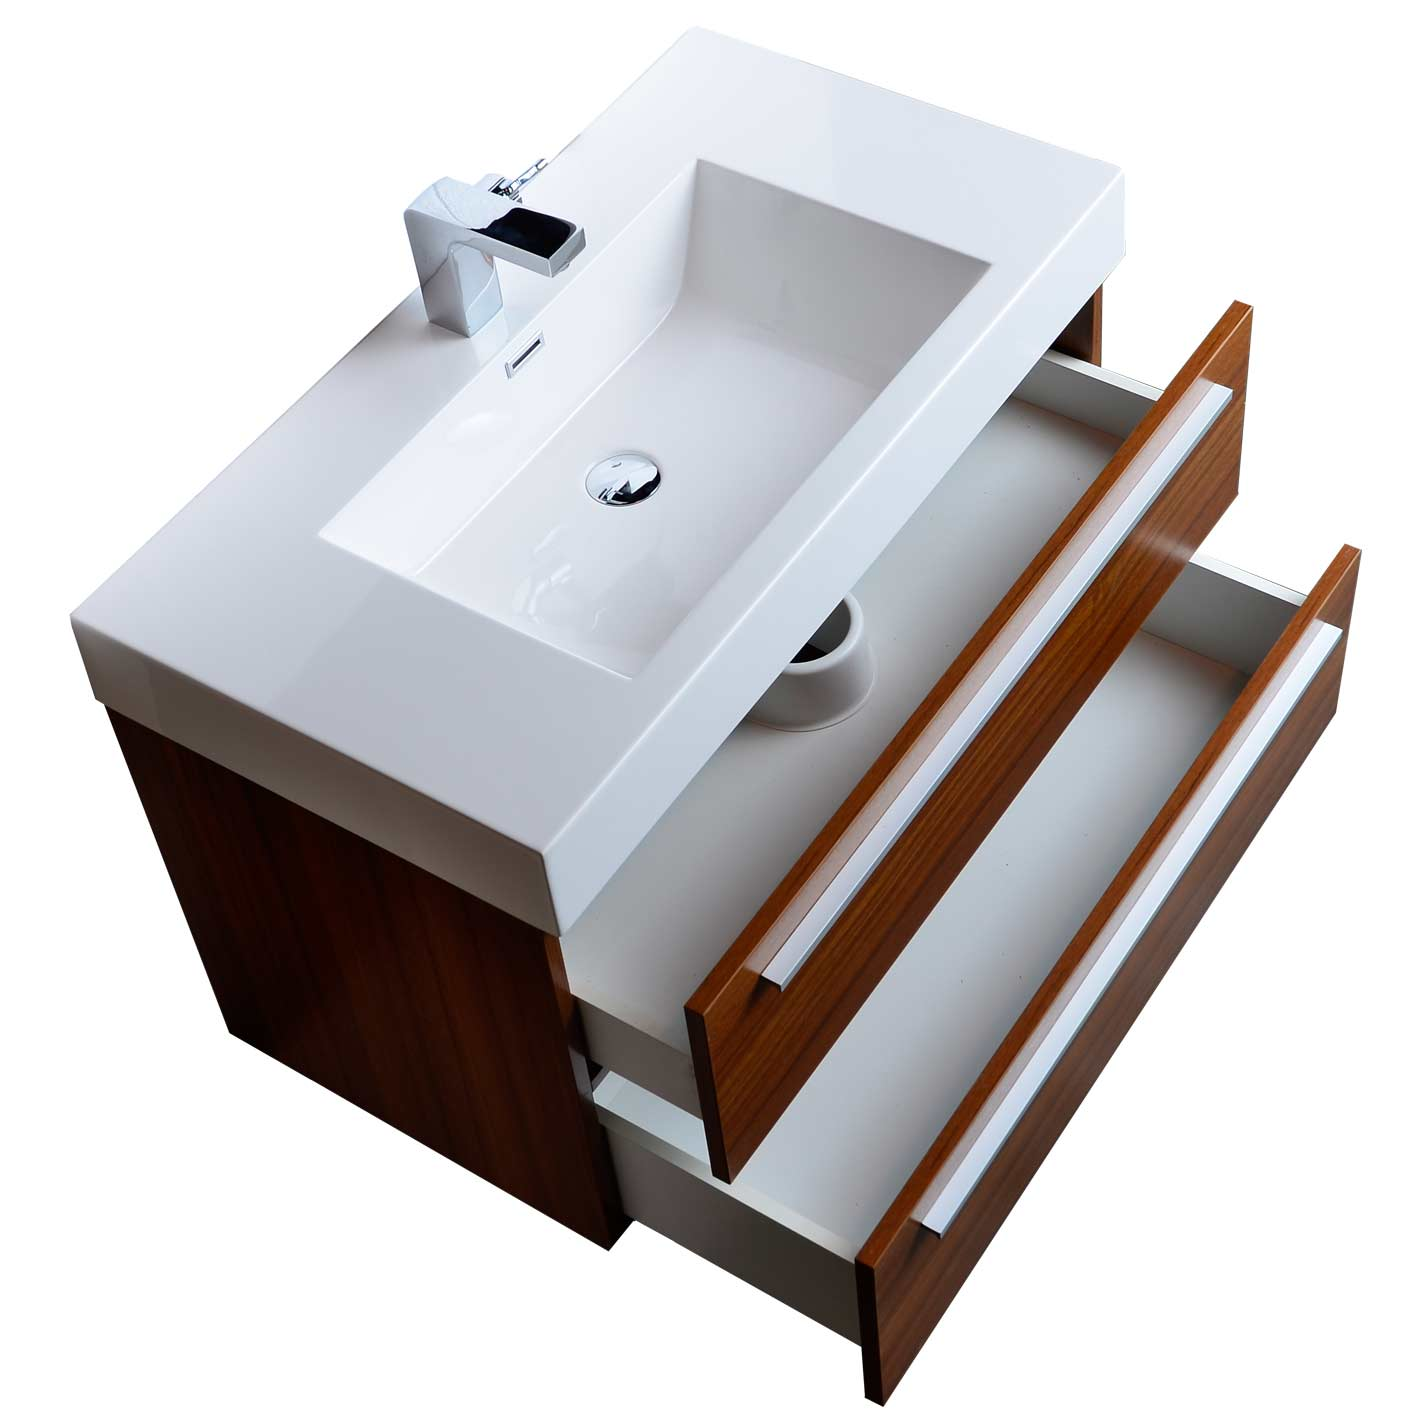 Modern Bathroom Vanity 36 Wall Mount Teak TN M900 TK